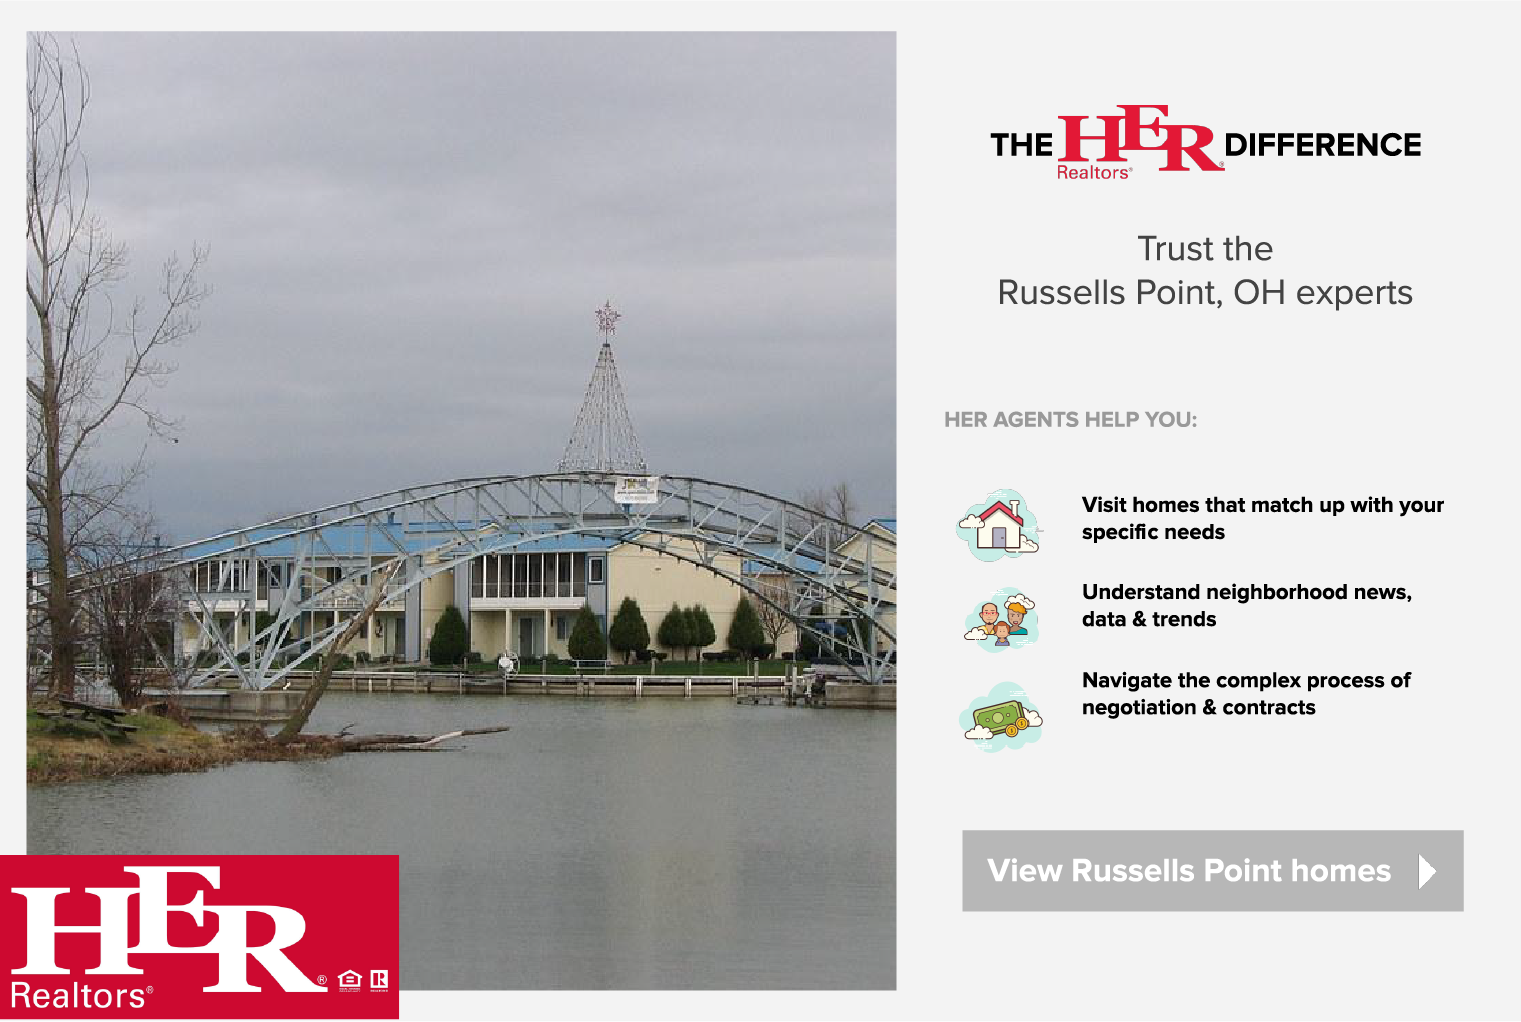 RUSSELLS POINT HOMES FOR SALE